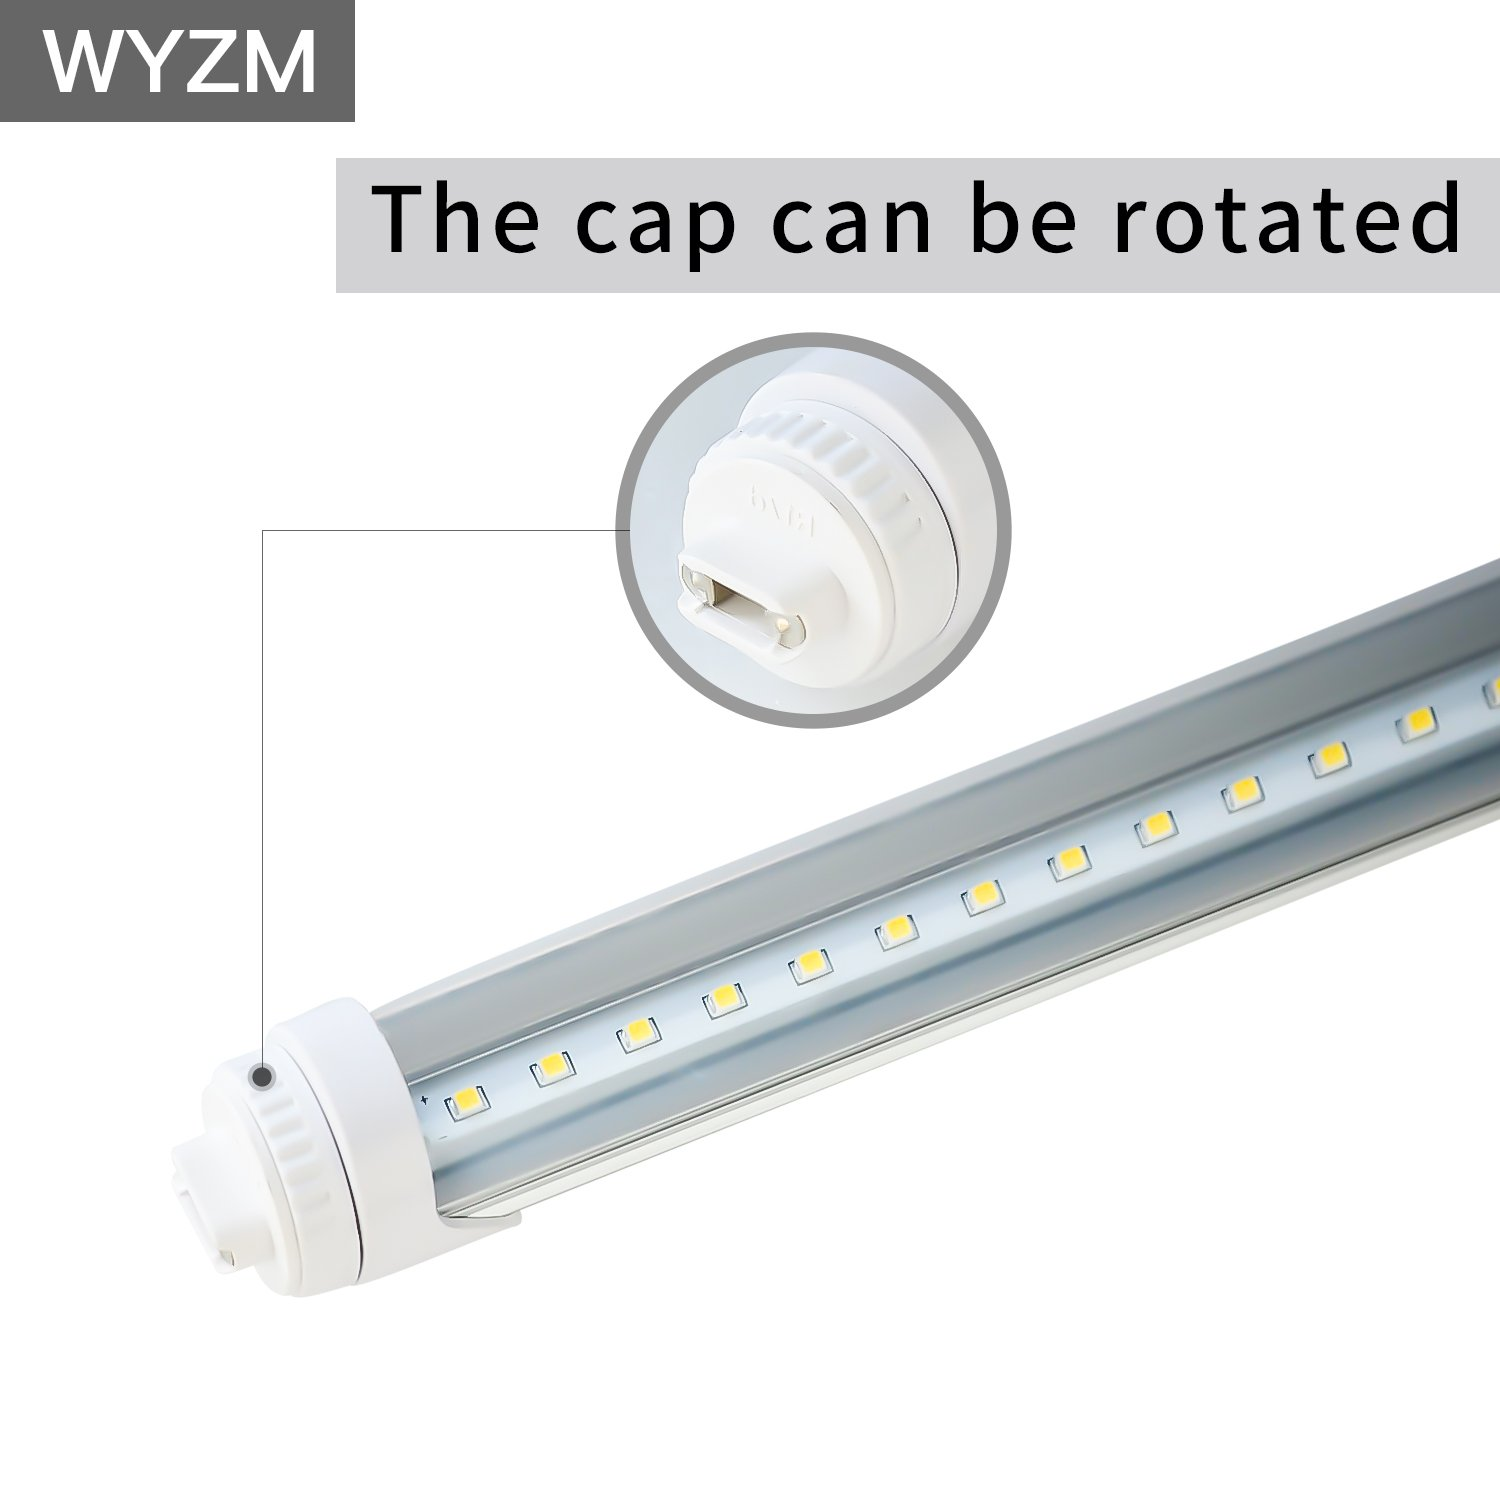 Wyzm R17d 6 Feet 30w Led Tube Light Fluorescent Replacement For How To Install A Bypassing Ballast Leds F72t12 Cw Ho 10 Pack White